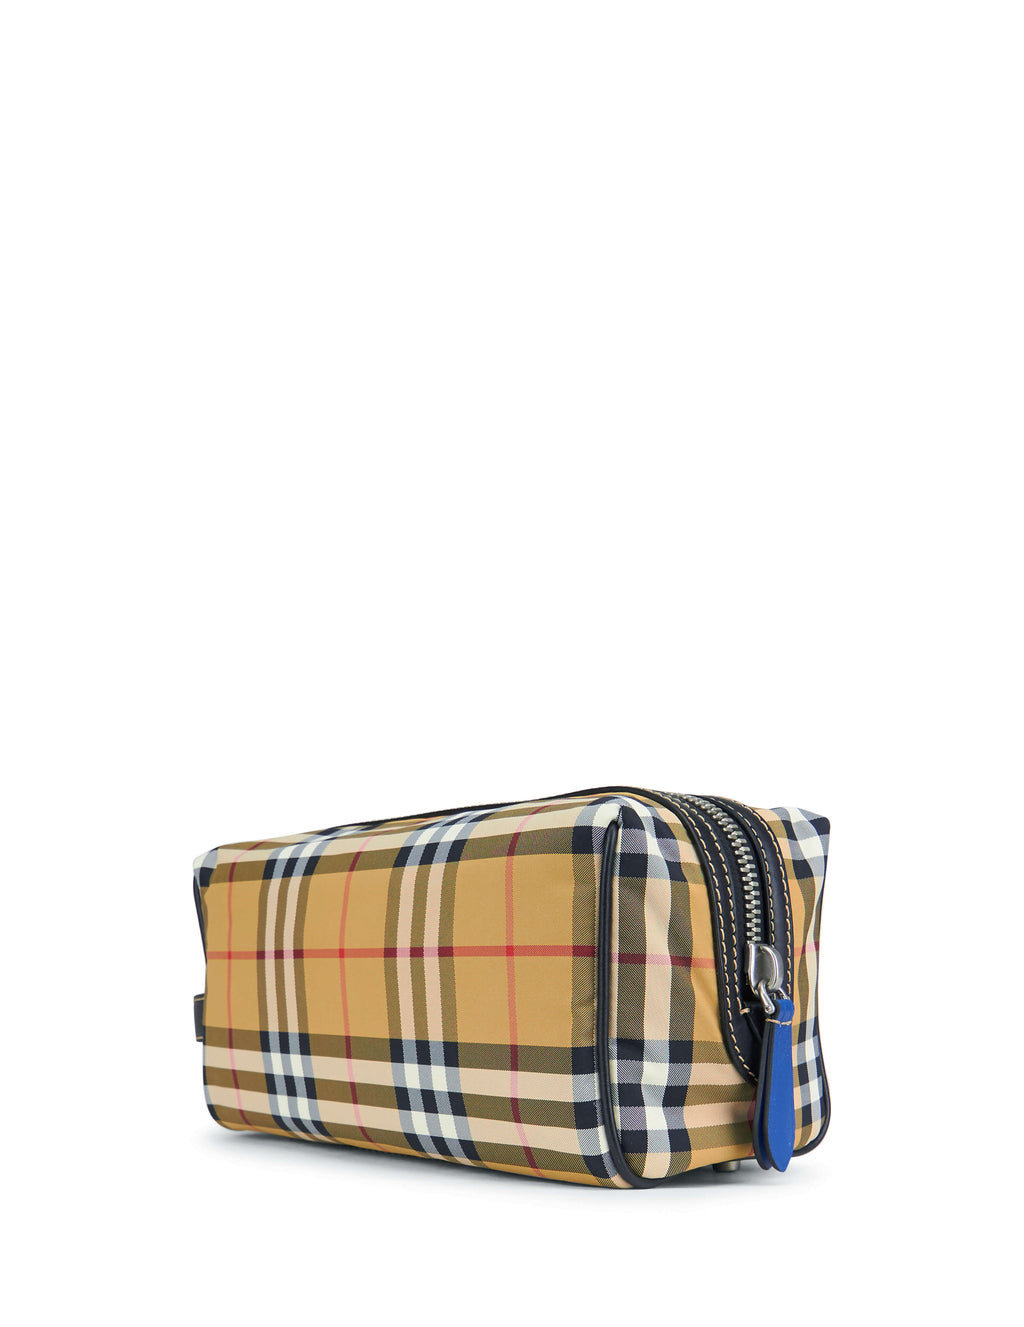 Burberry Men's Giulio Fashion Antique Yellow Vintage Check Wash Bag 8006881A2442